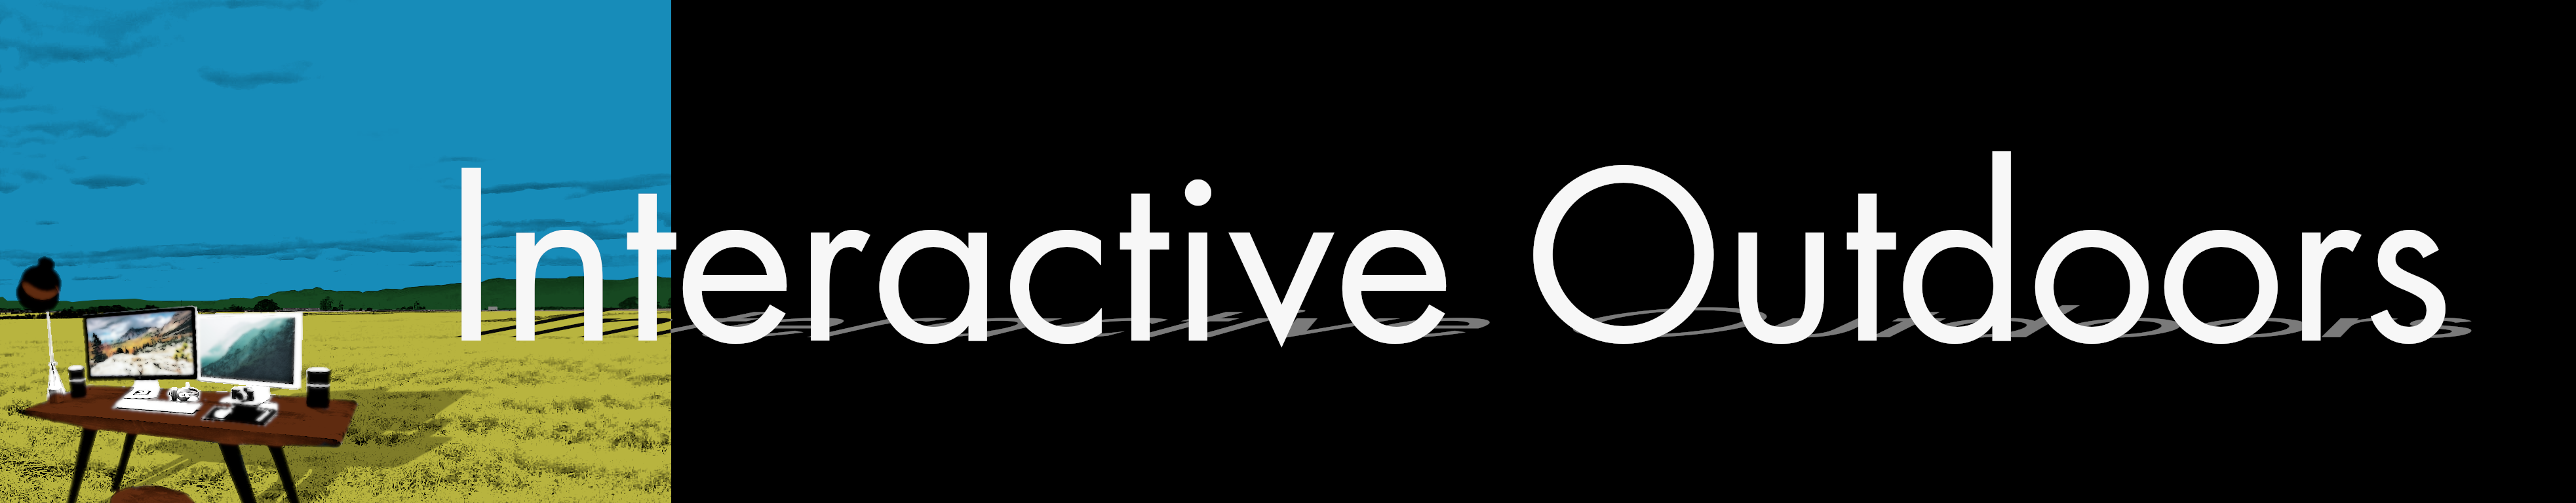 Interactive Outdoors logo